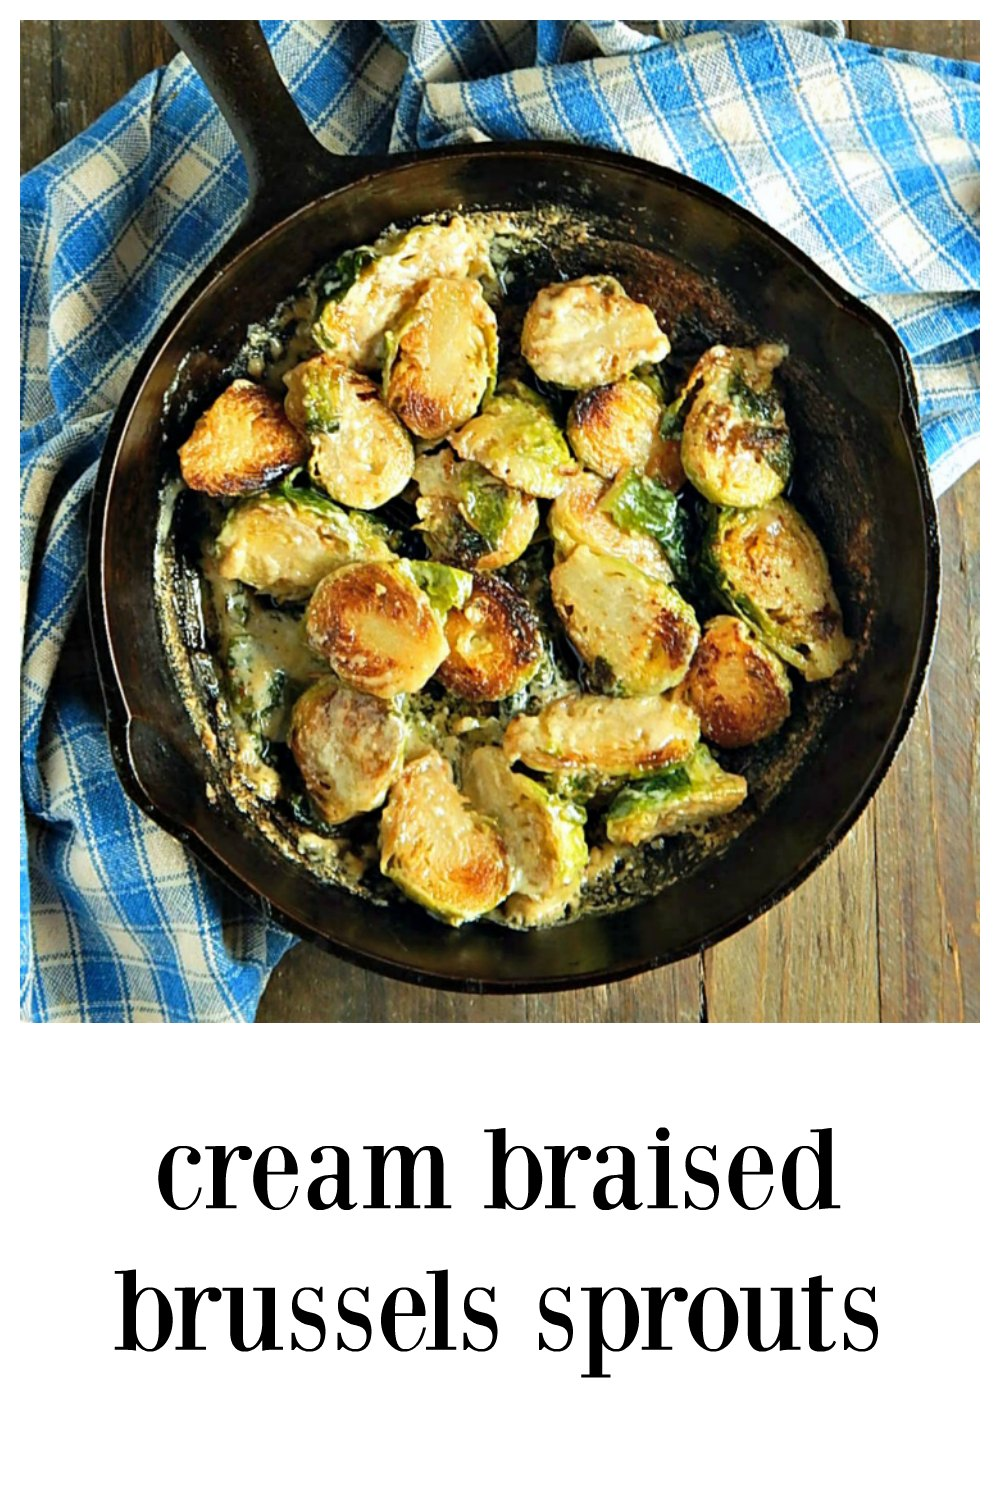 Cream Braised Brussels Sprouts are decadent and a fabulous side for a steak. They're tenderly braised until they're soft & luscious. Super easy but needs a bit of attention at the end. #BrusselsSprouts #BraisedBrusselsSprouts #CreamBraisedBrusselsSprouts #SteakkhouseBrussels